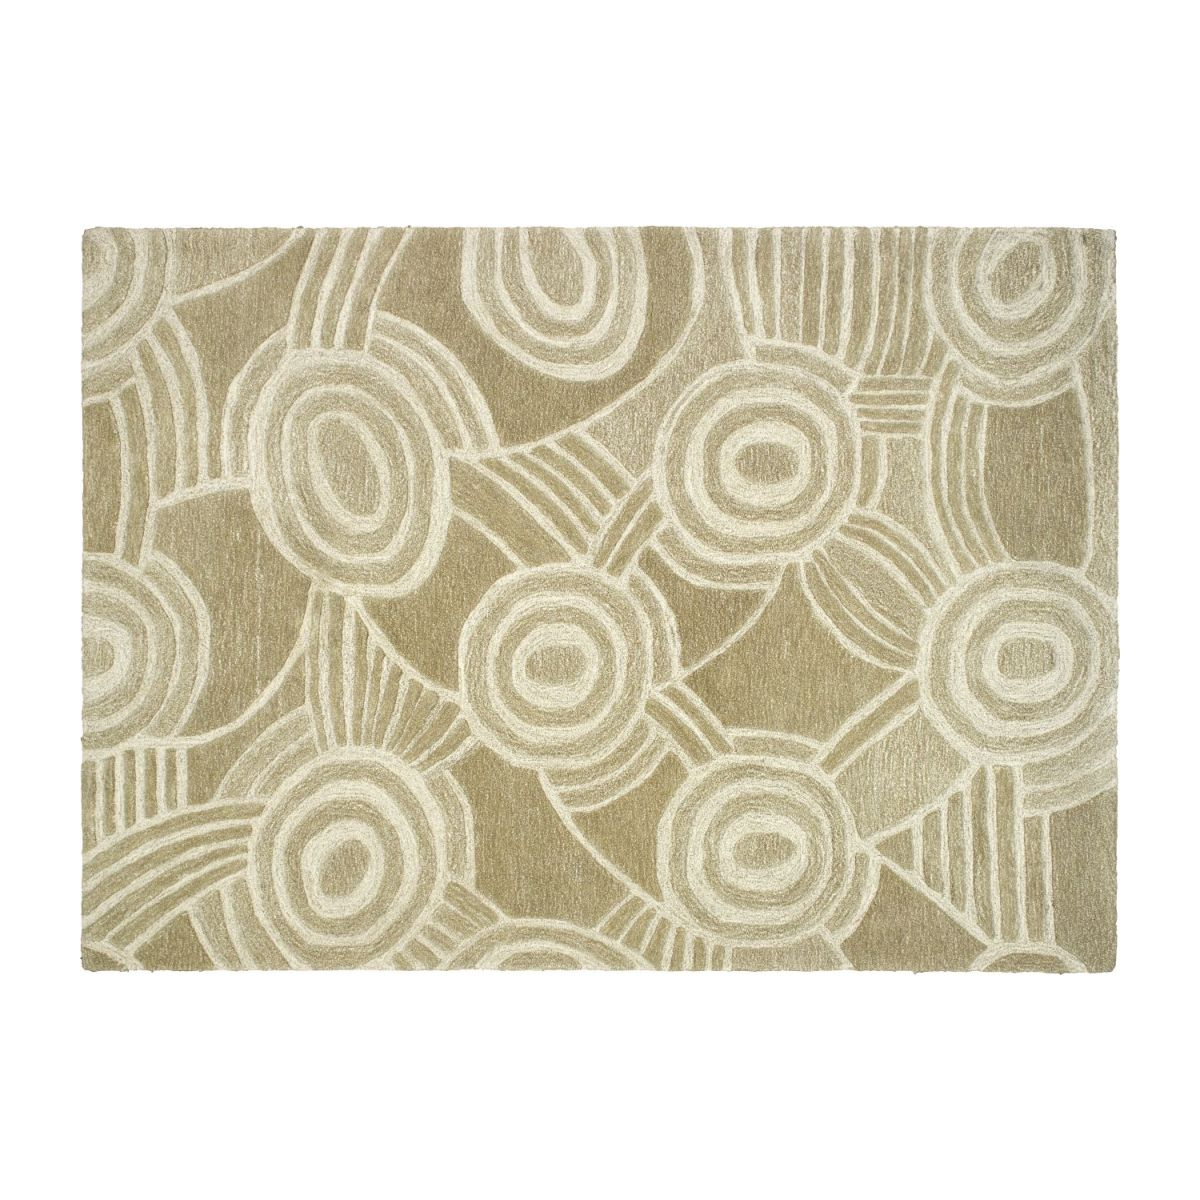 Tufted carpet 170x240, beige with patterns n°1